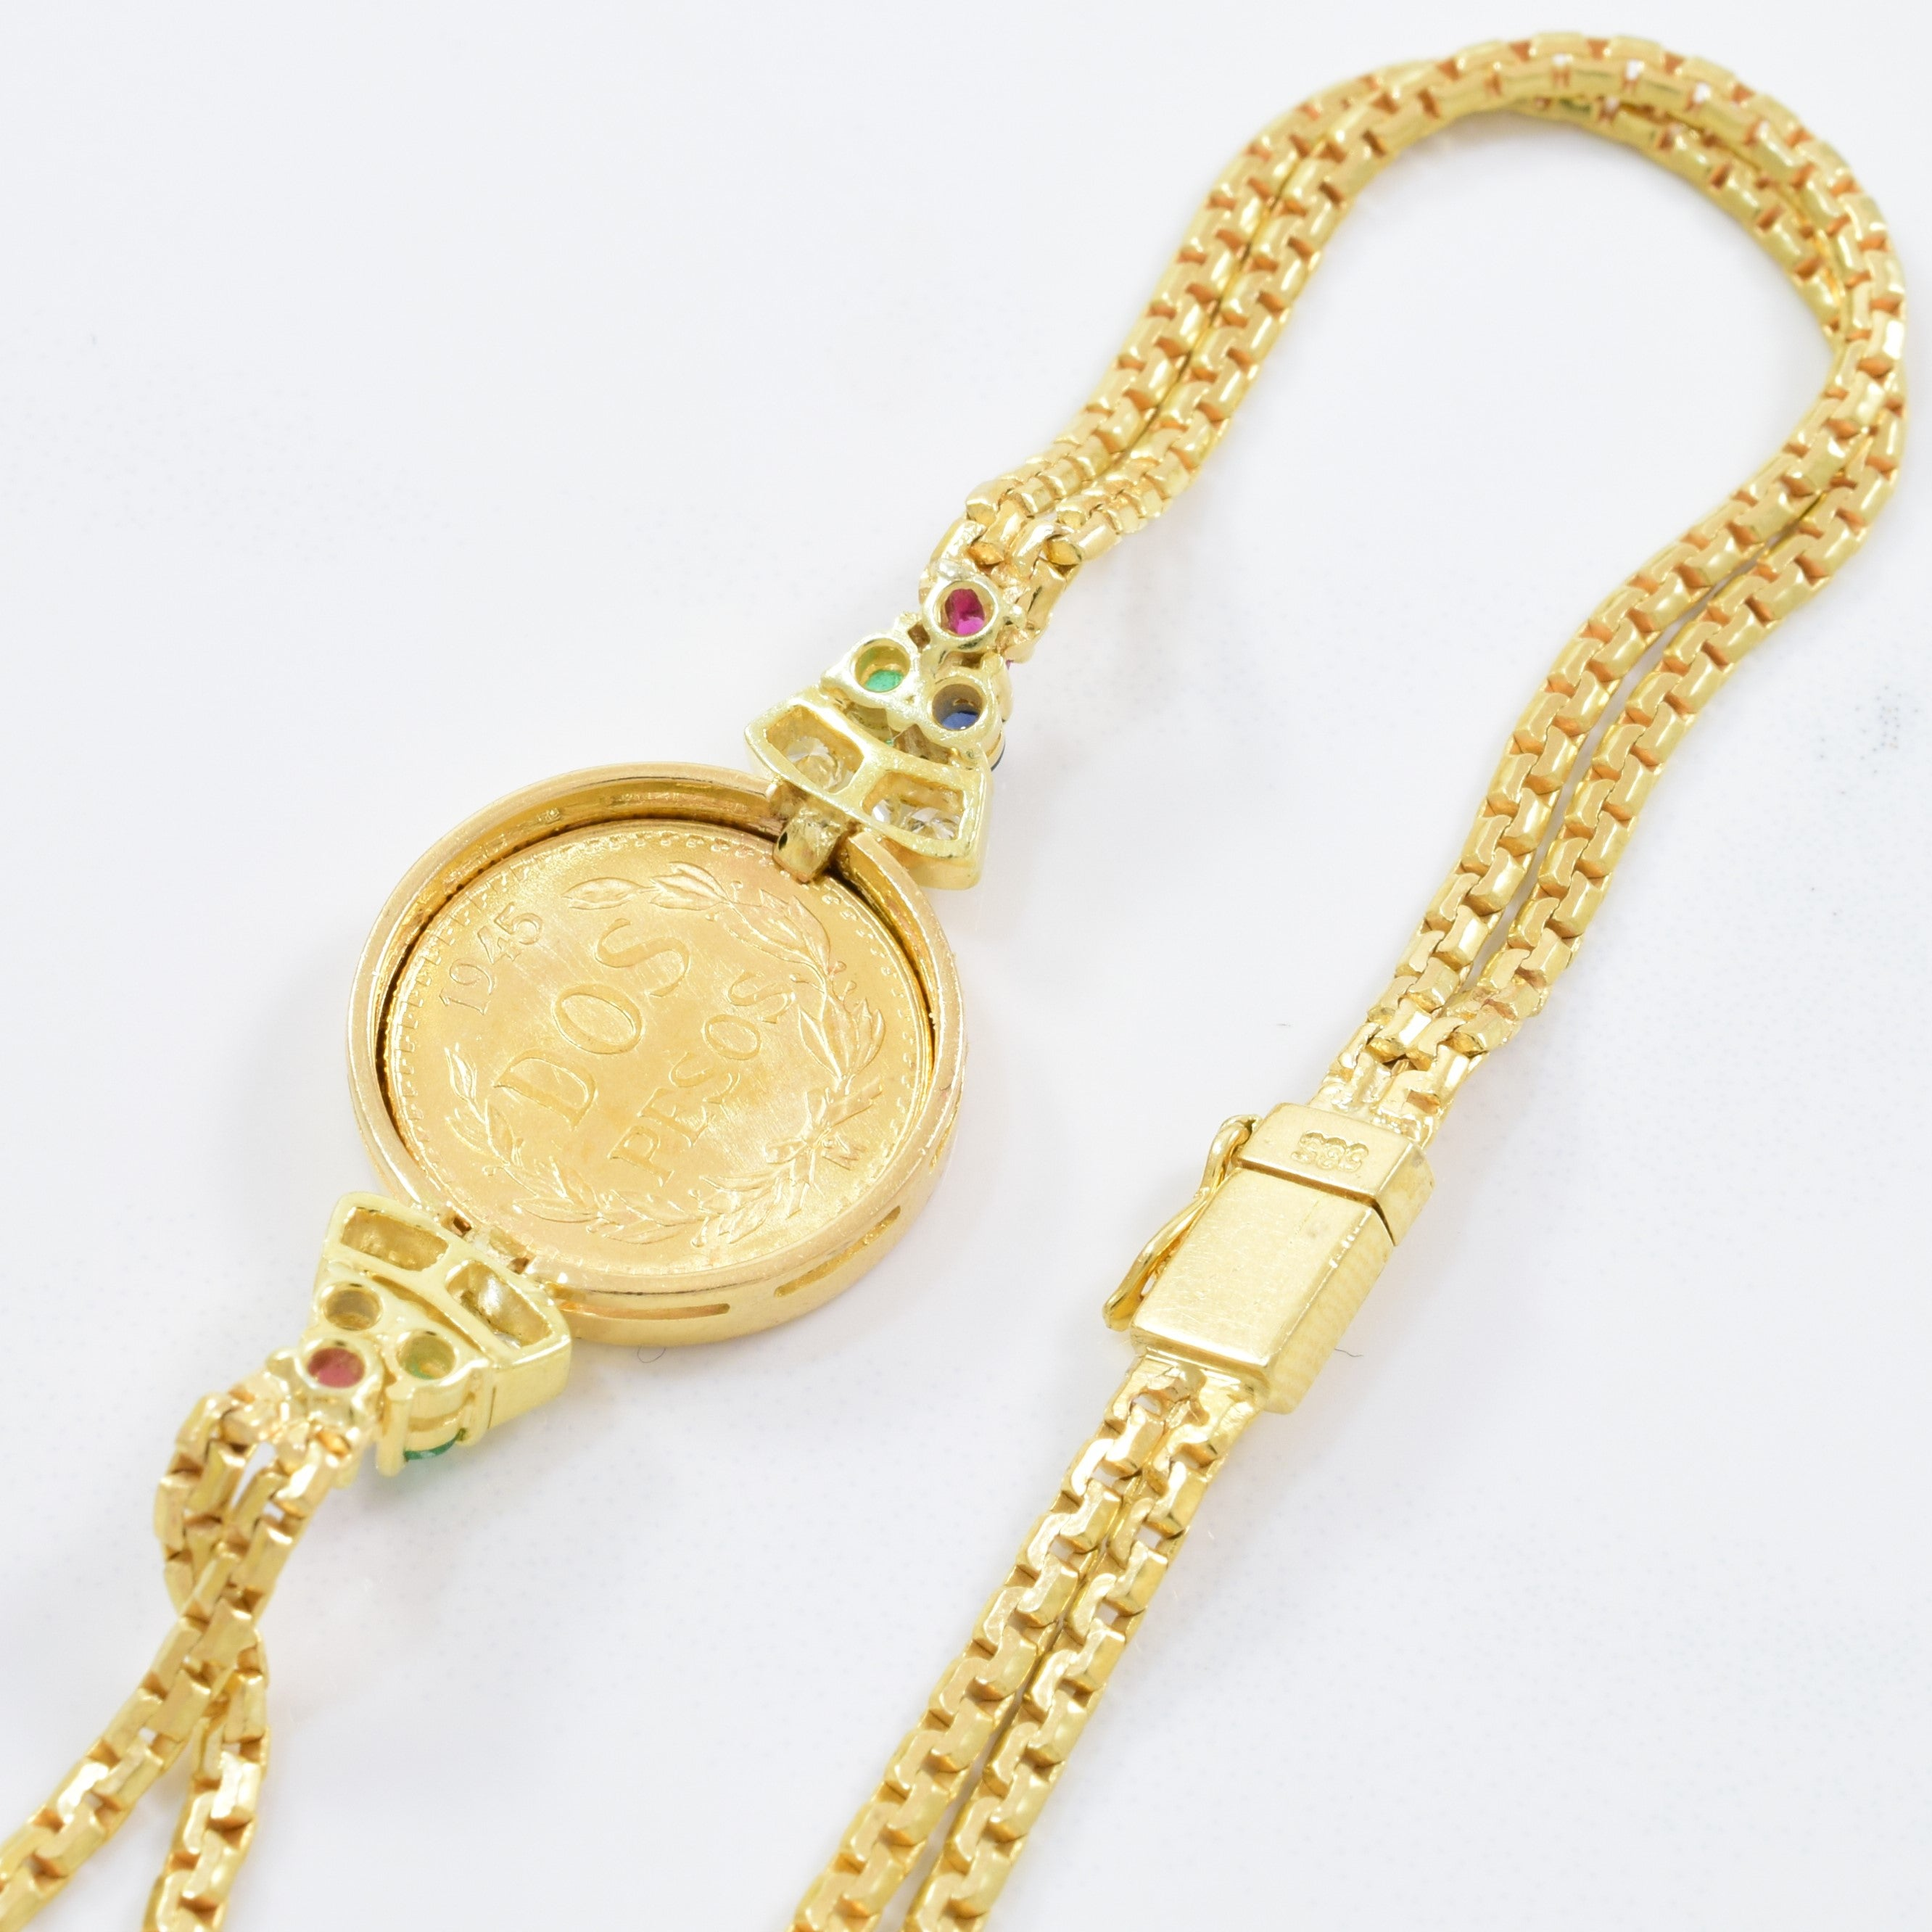 Two Peso Gold Coin Bracelet | 0.12ctw, 0.22ctw | 7"